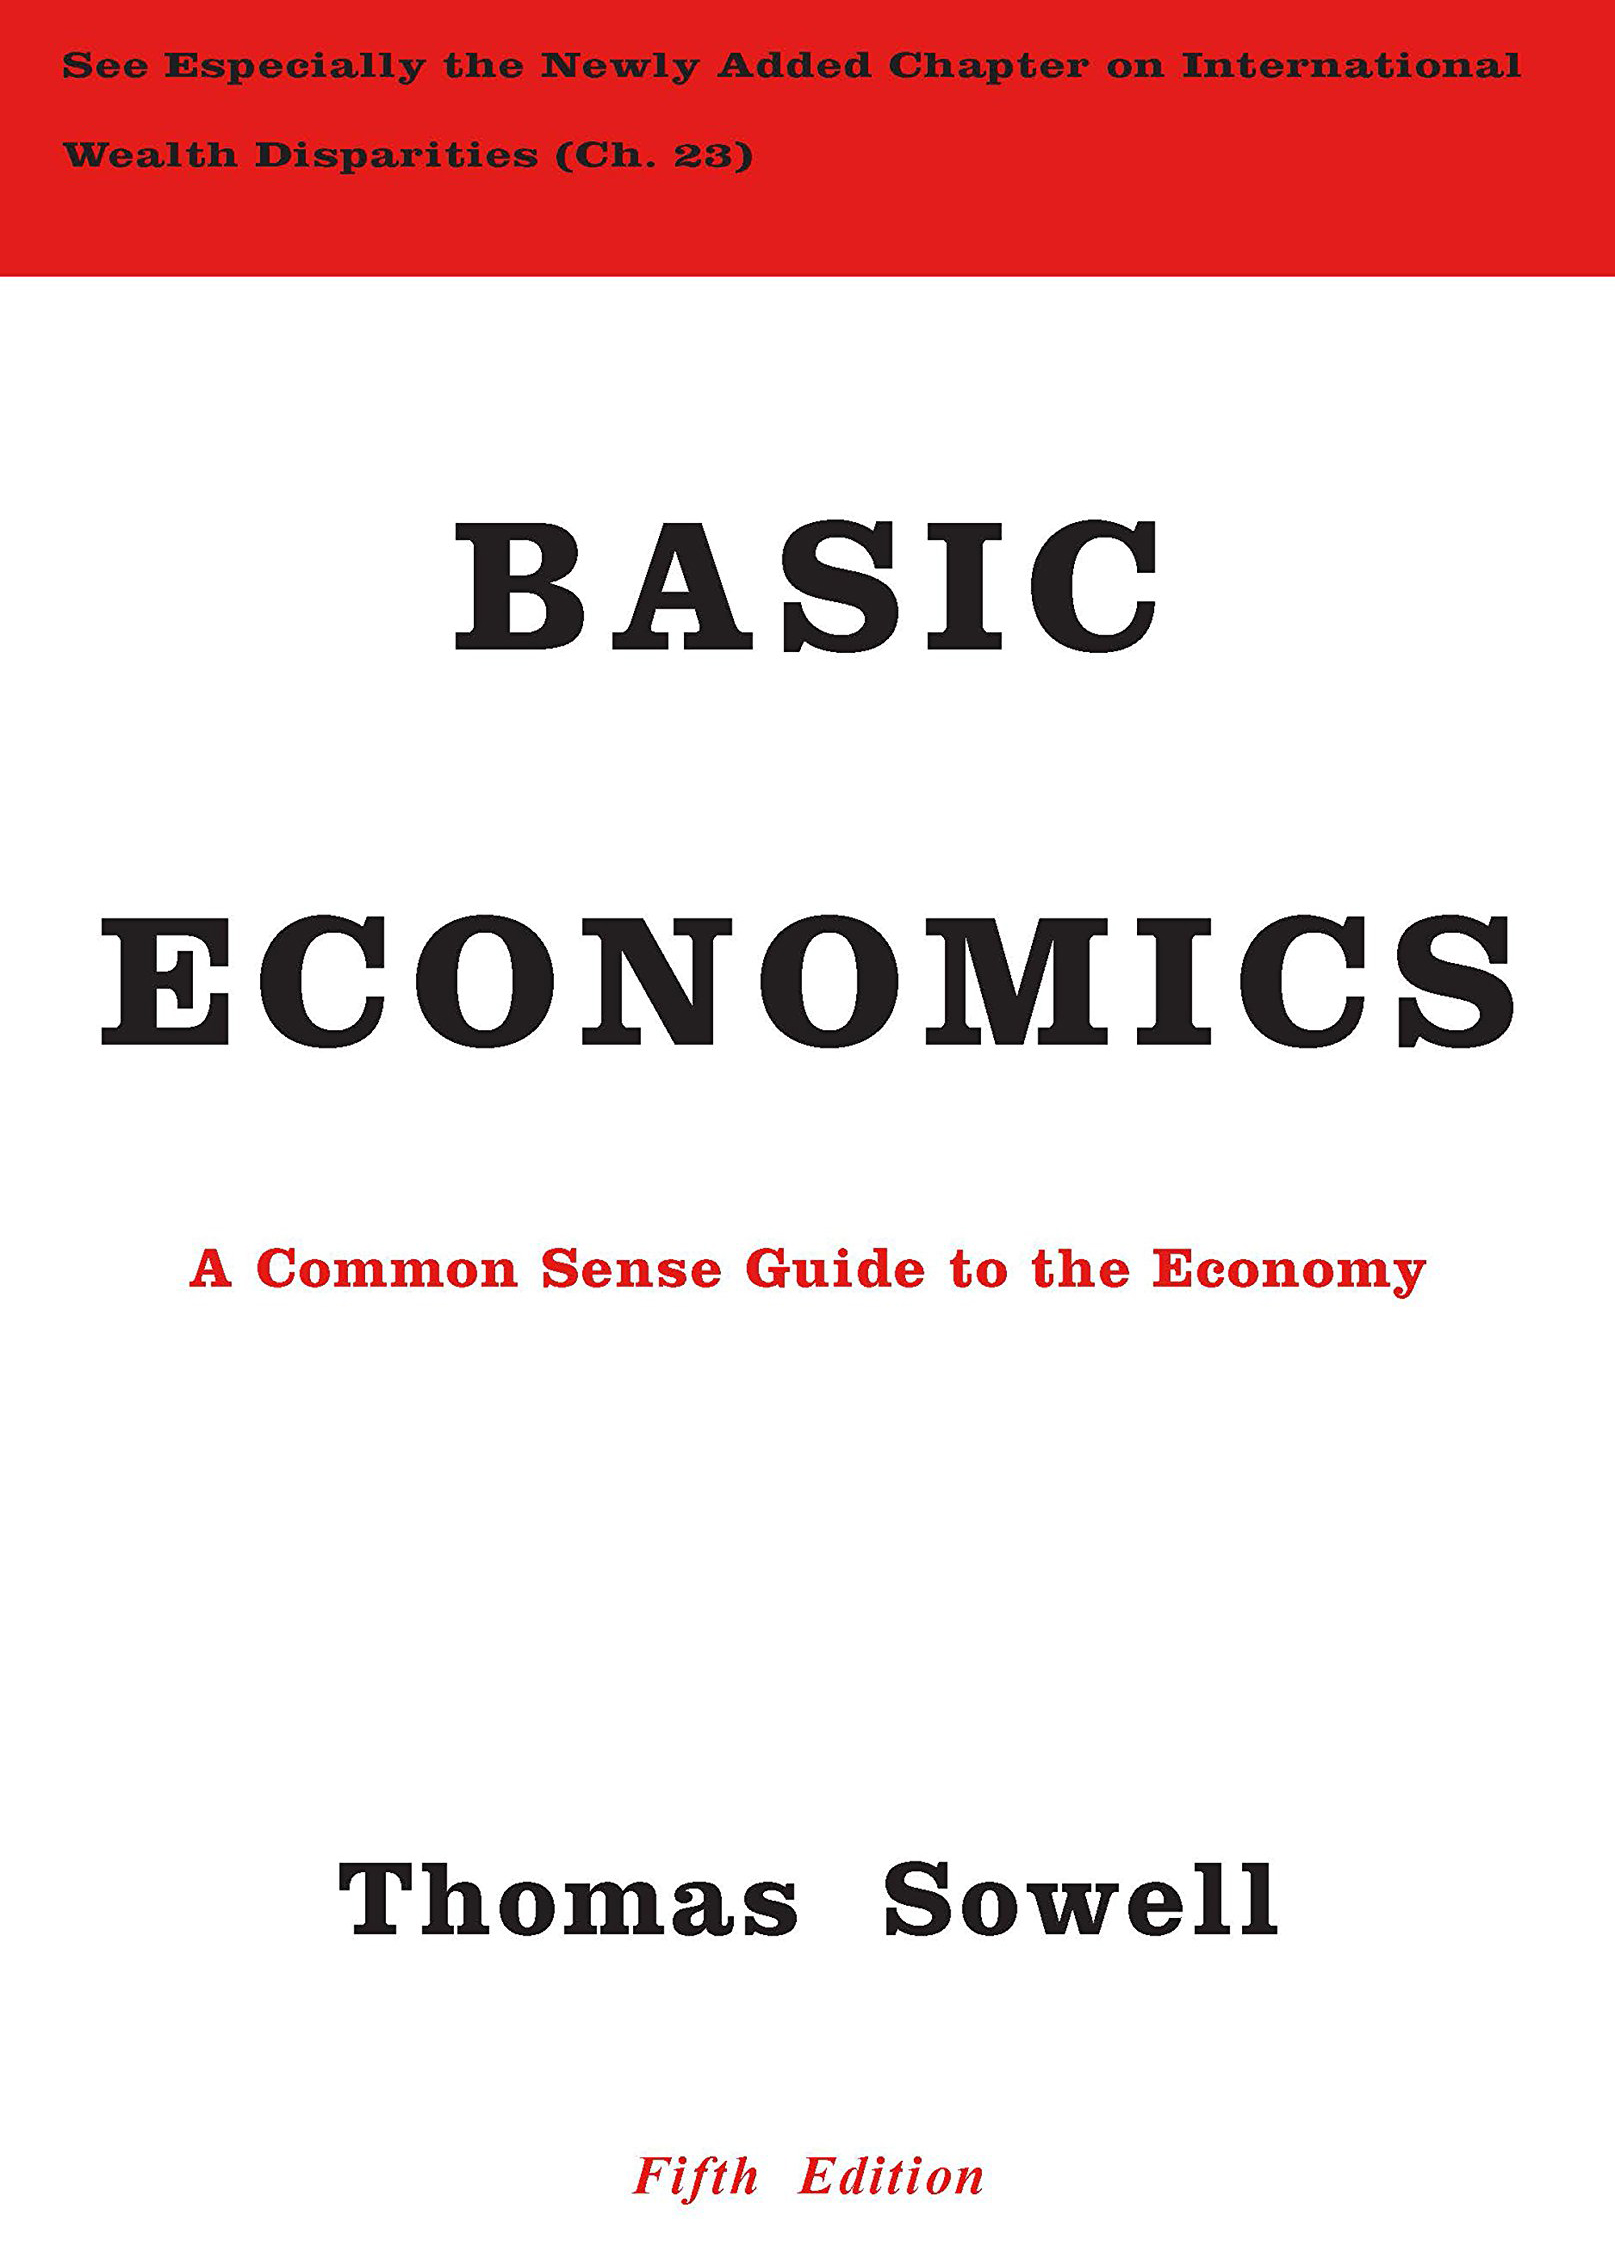 Sowell, Thomas - Basic Economics.jpg